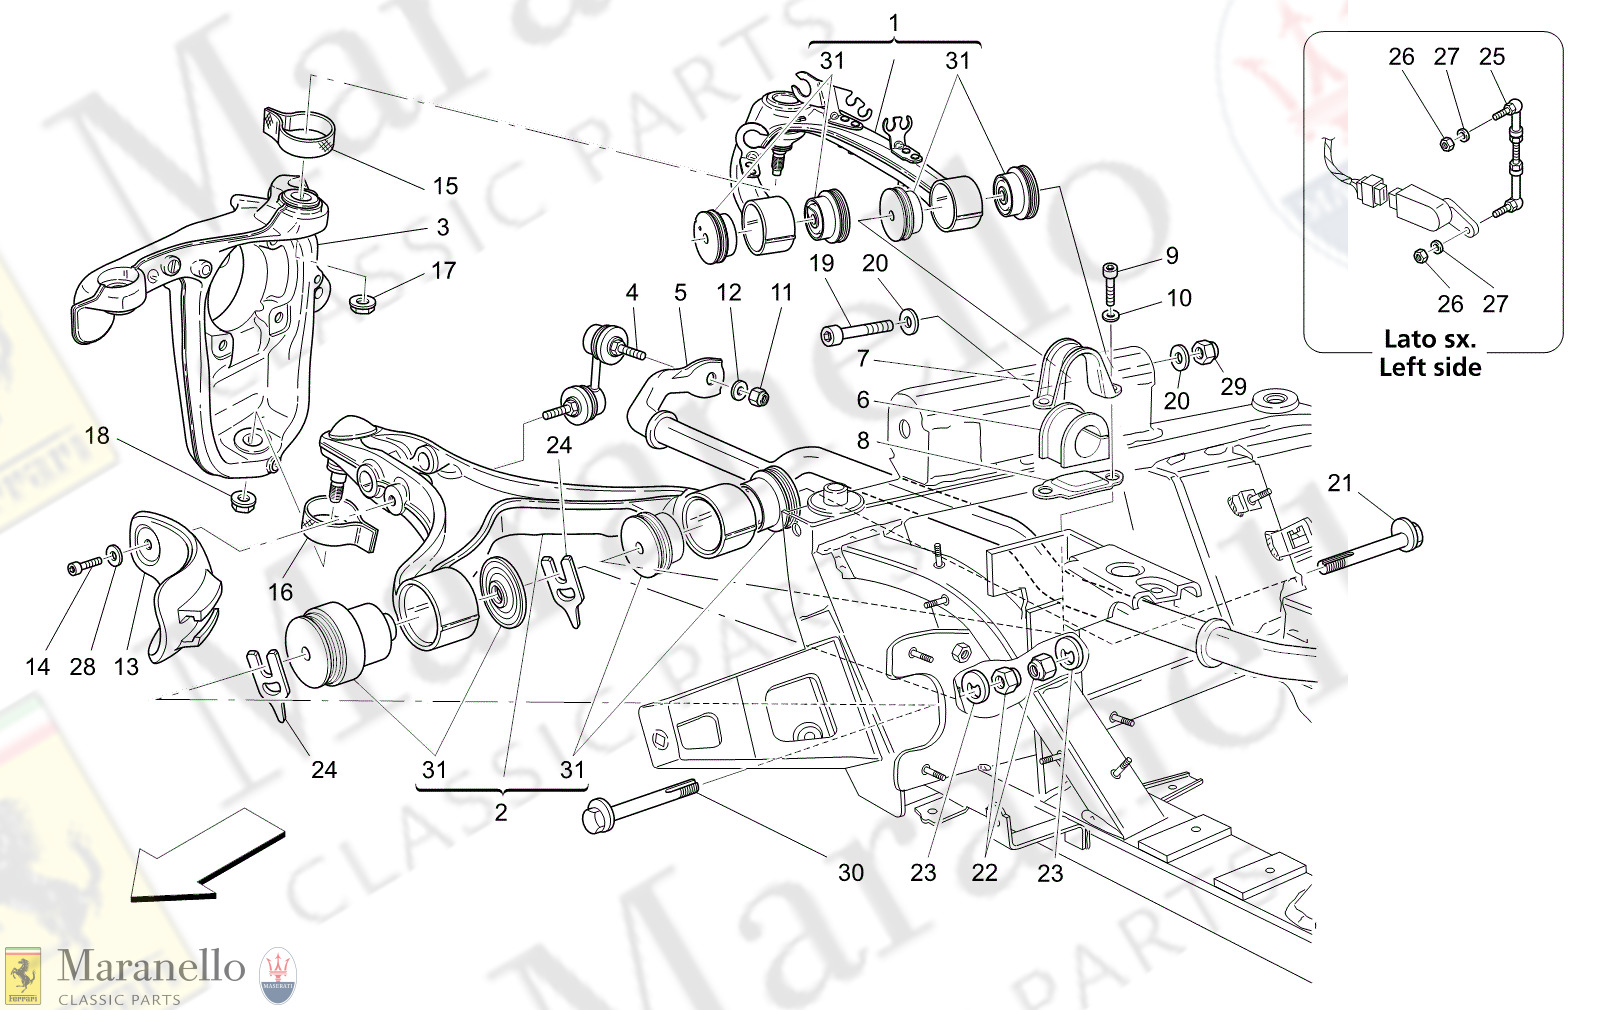 06.10 - 1 - 0610 - 1 Front Suspension